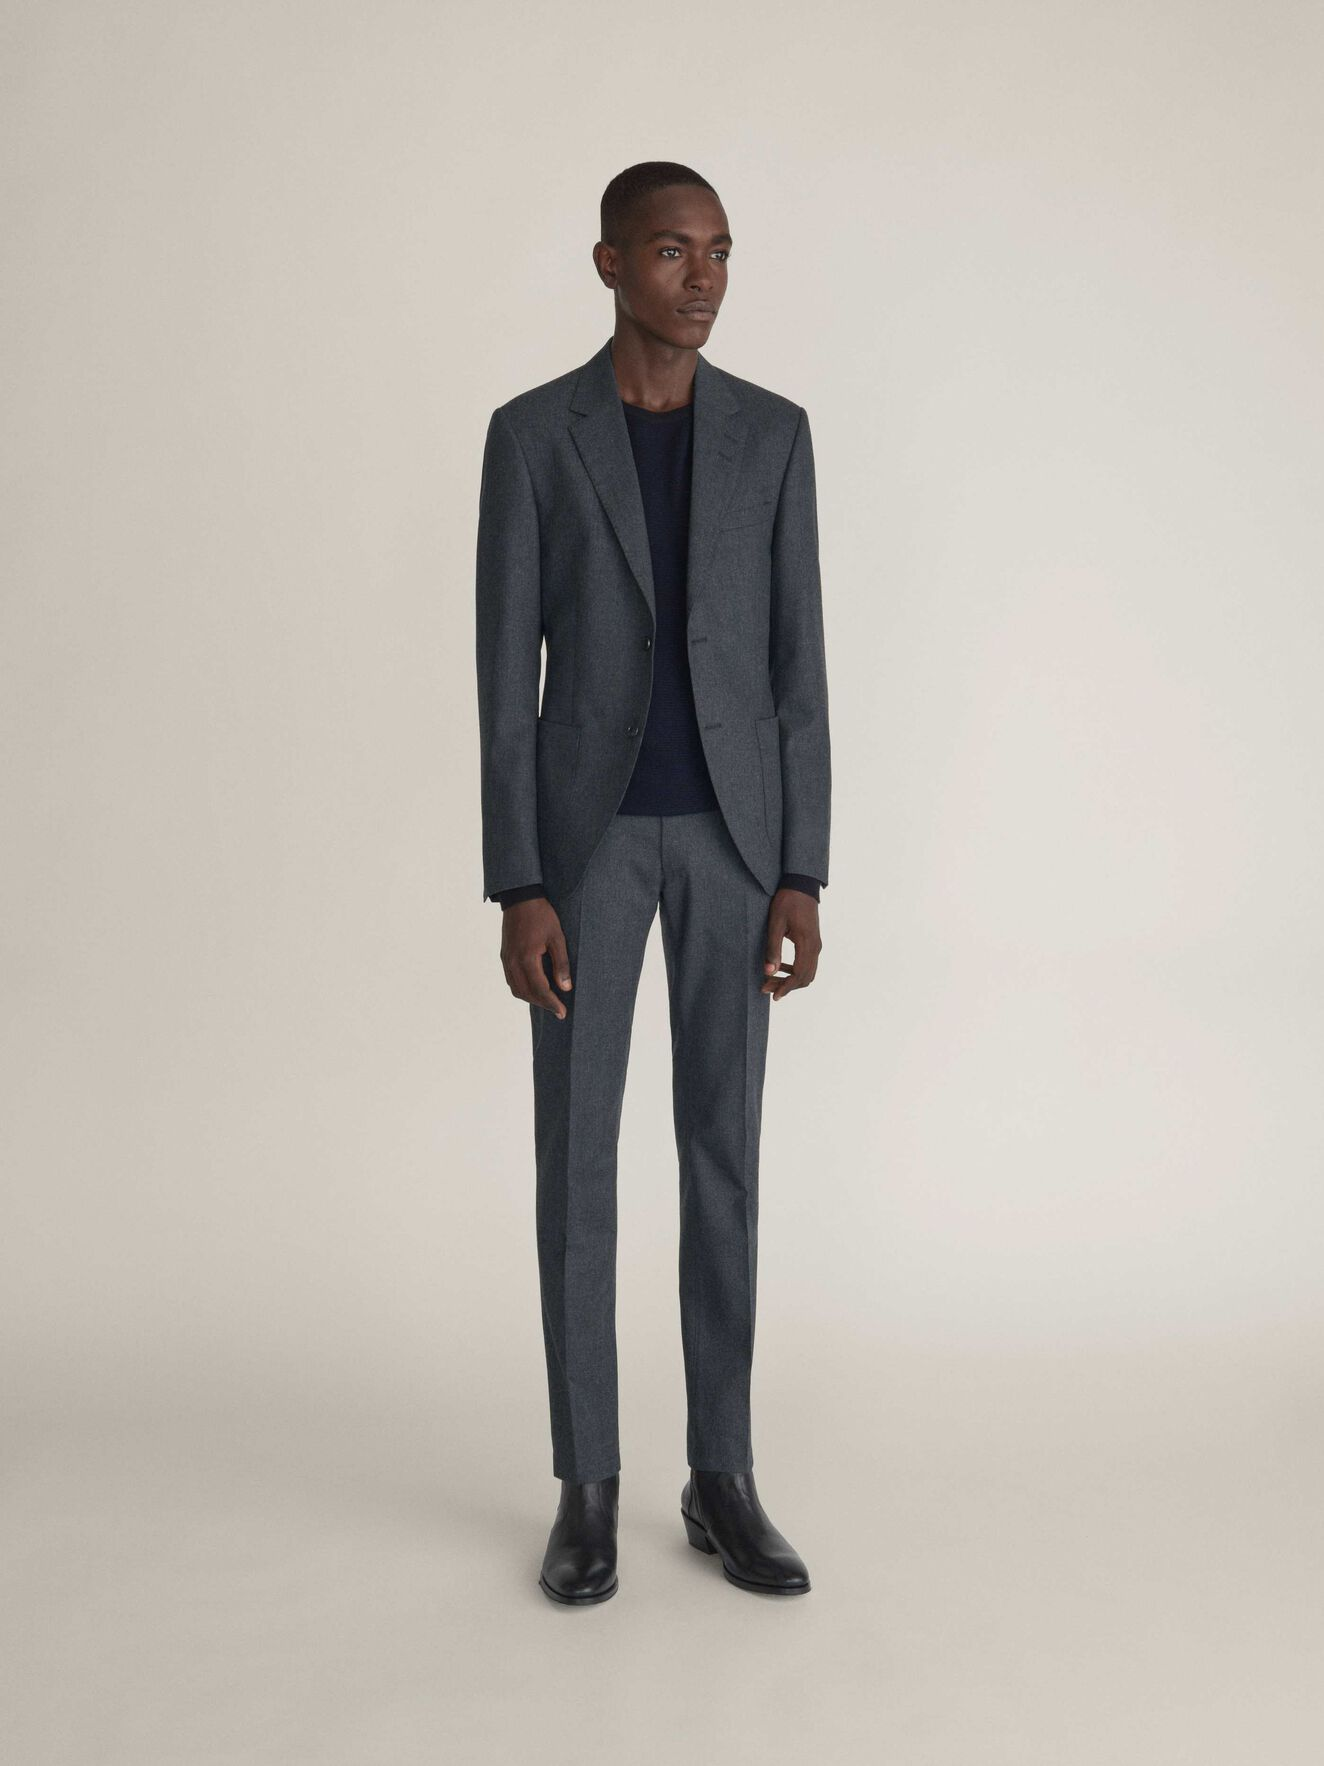 Jamot Blazer in Med Grey Mel from Tiger of Sweden